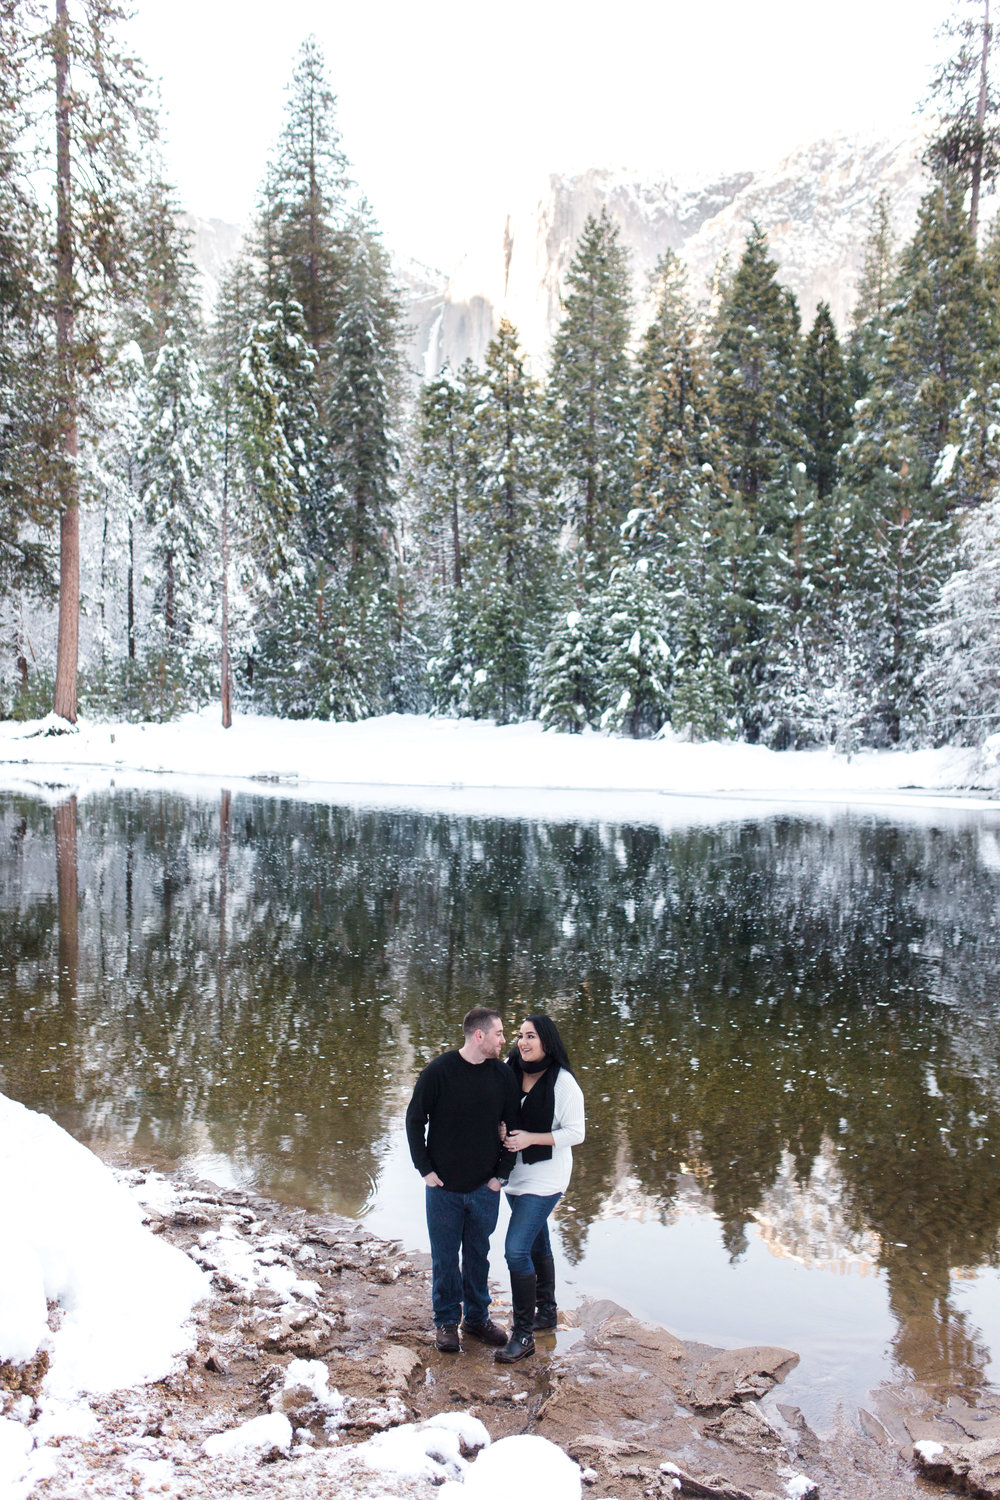 yosemite-california-engagement-session-6-2.jpg